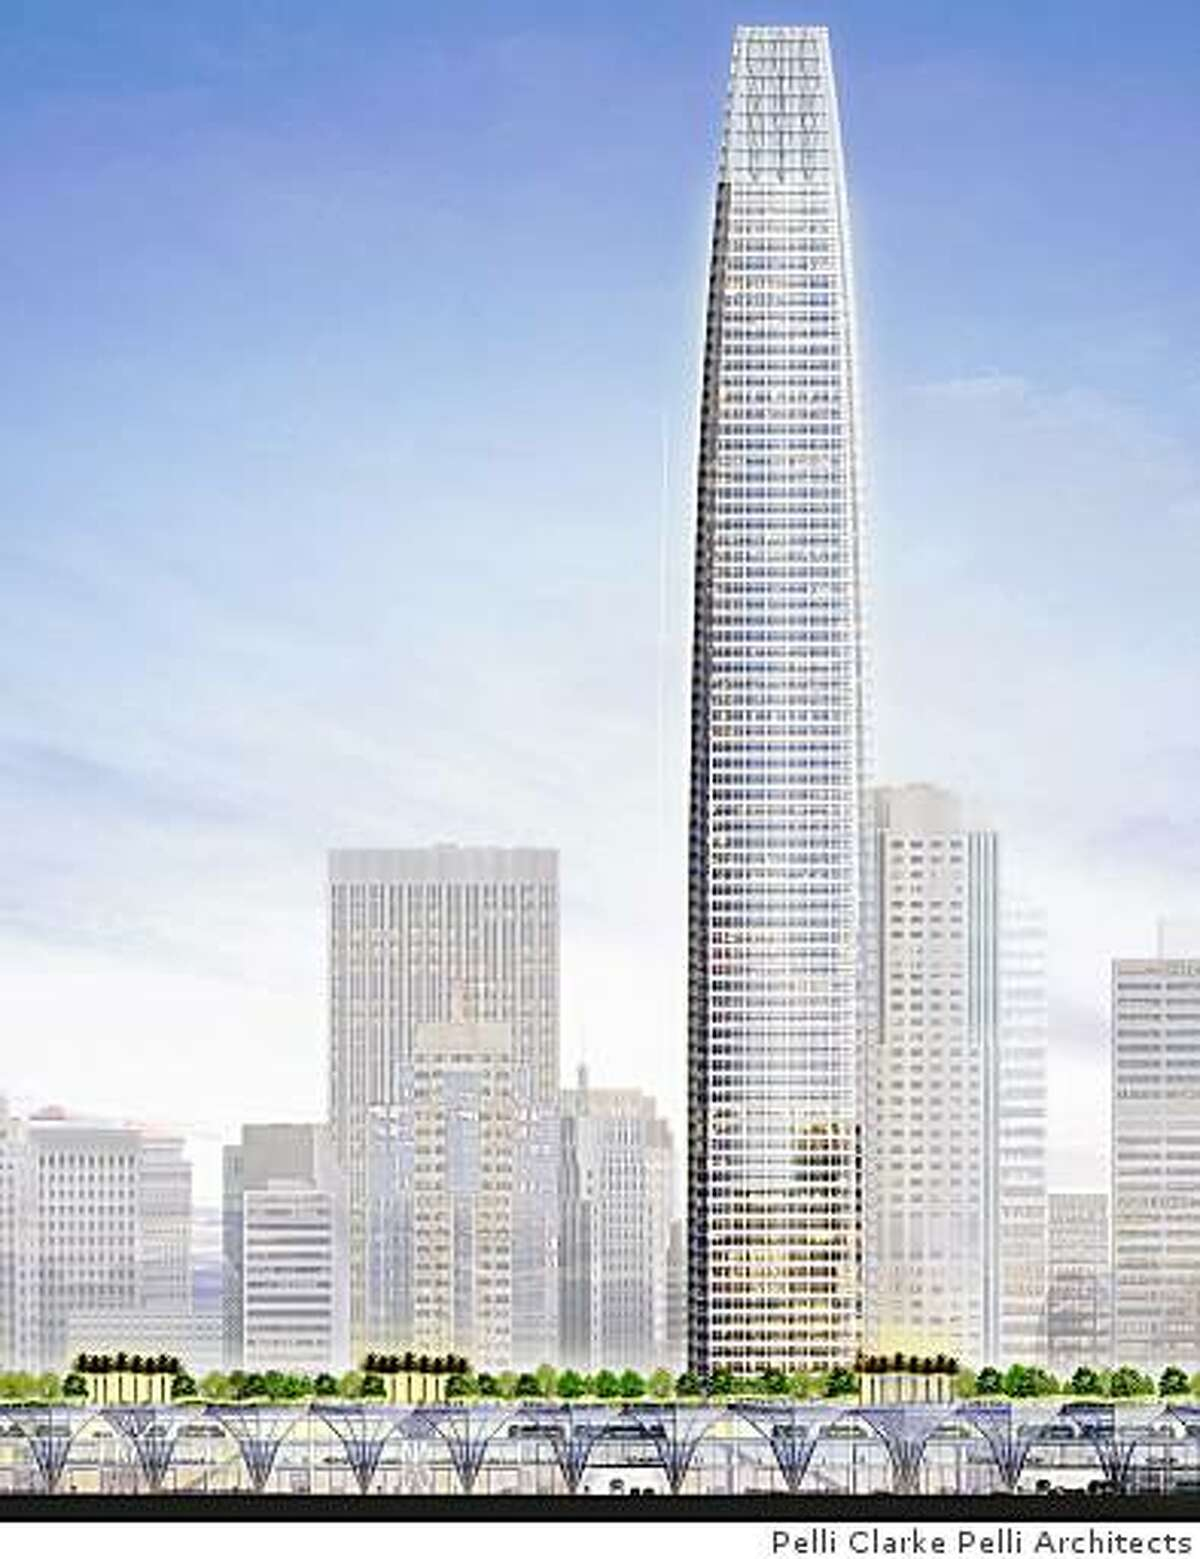 Proposed transbay terminal plan from Pelli Clarke Pelli Architects